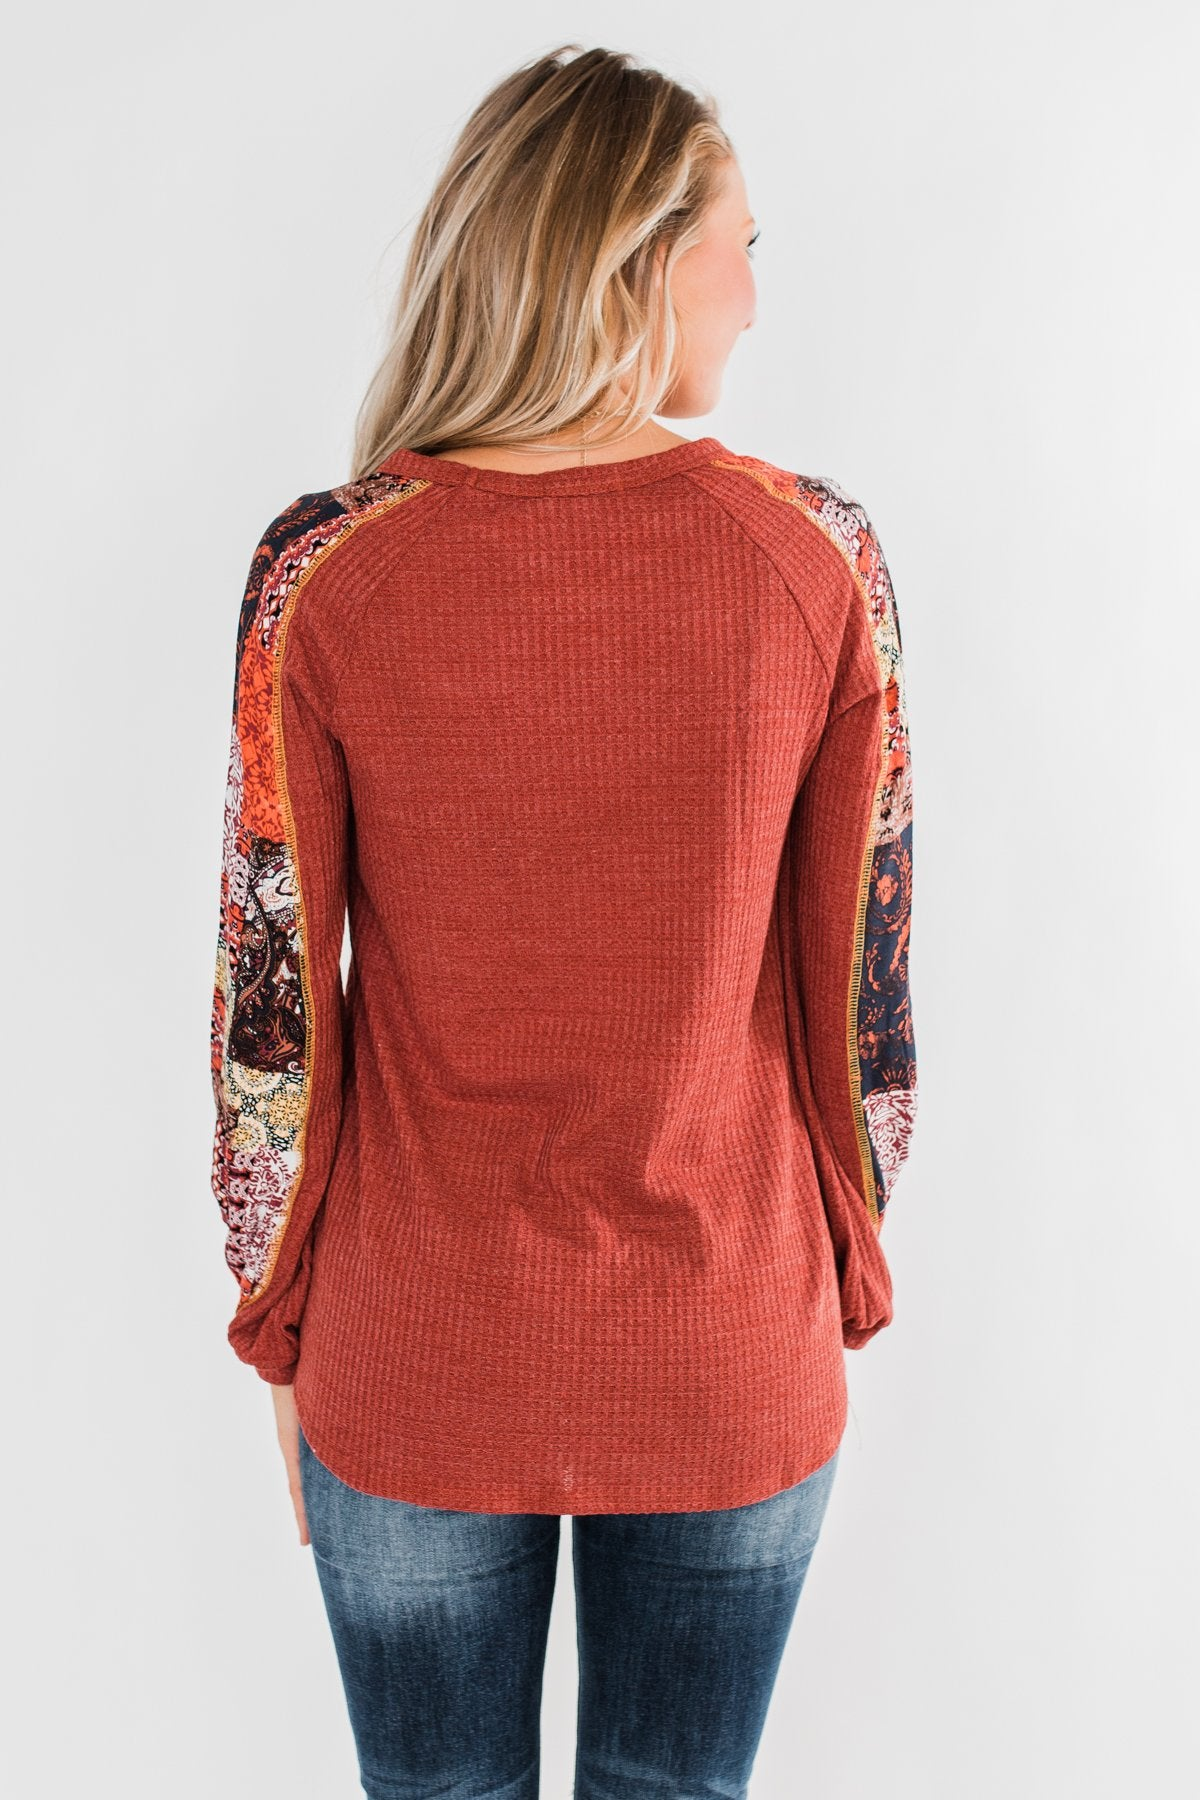 All To Myself Long Sleeve Top- Rust